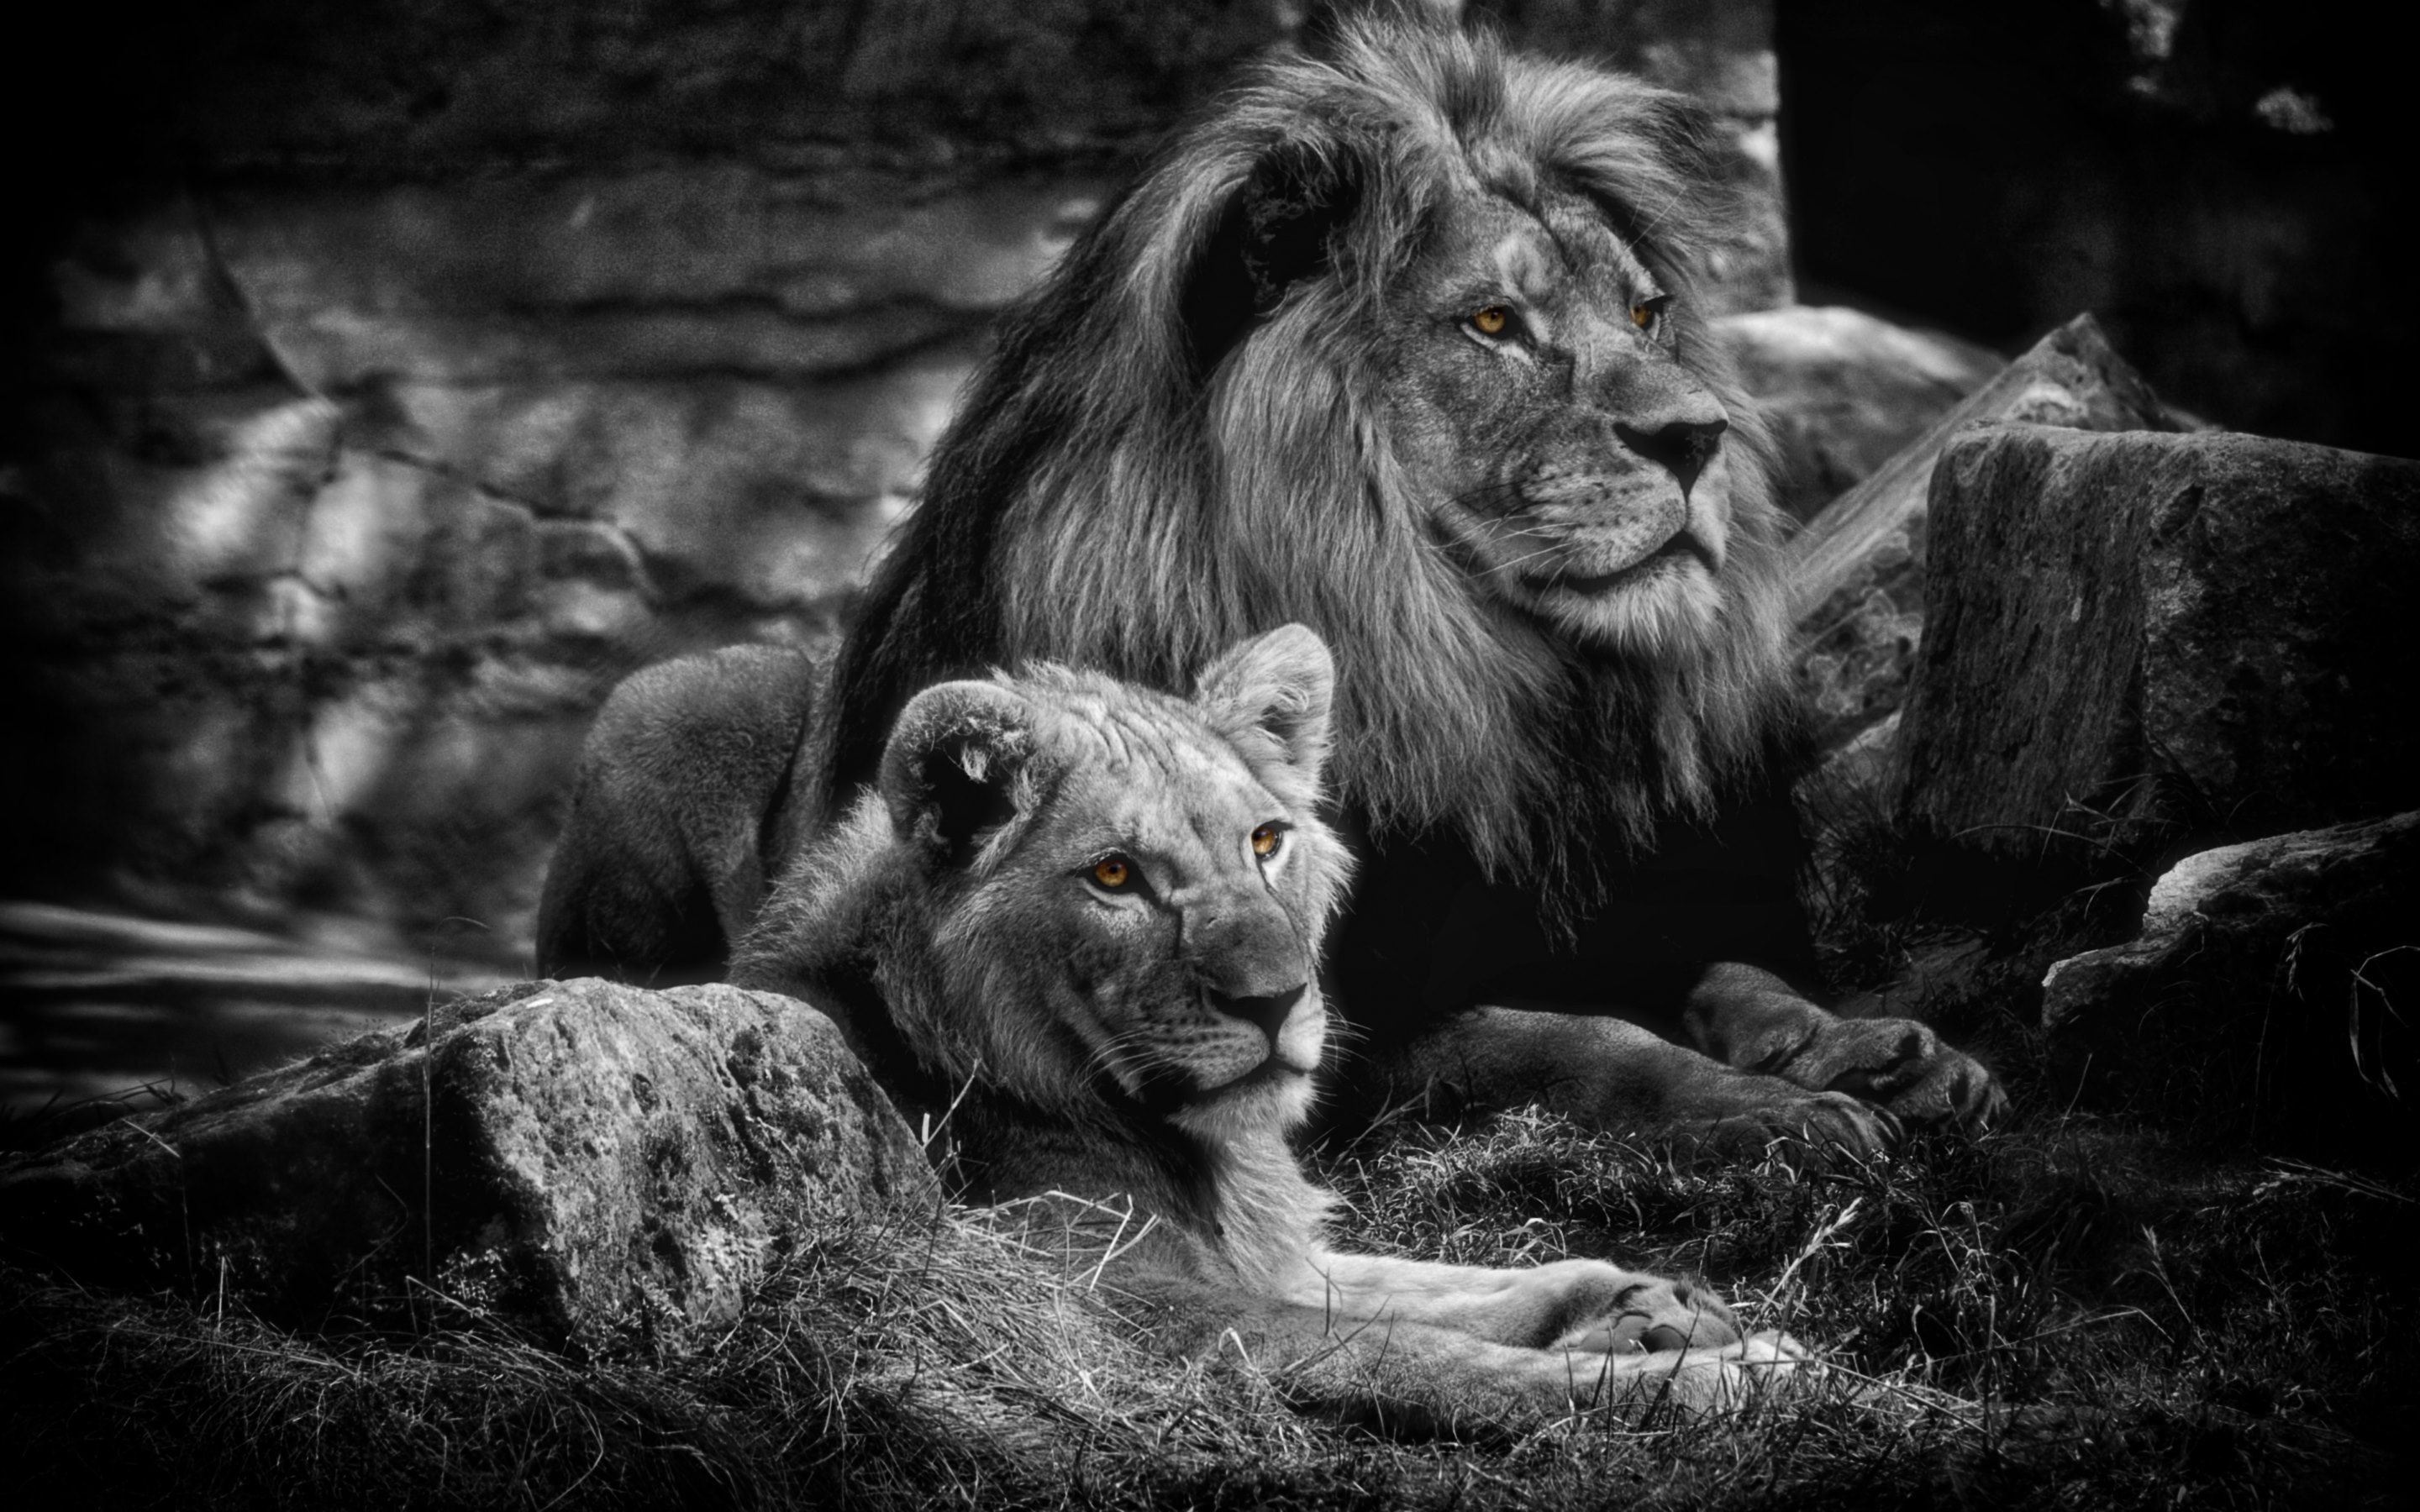 Https 4 Bp Blogspot Com Nd5k9fwyt A Vhpnr6bkczi Aaaaaaab150 Ft1563 G54 S0 Lion Kng Of The Jungle2 Wallpaper Jpg Black And White Lion Animals Lions Photos